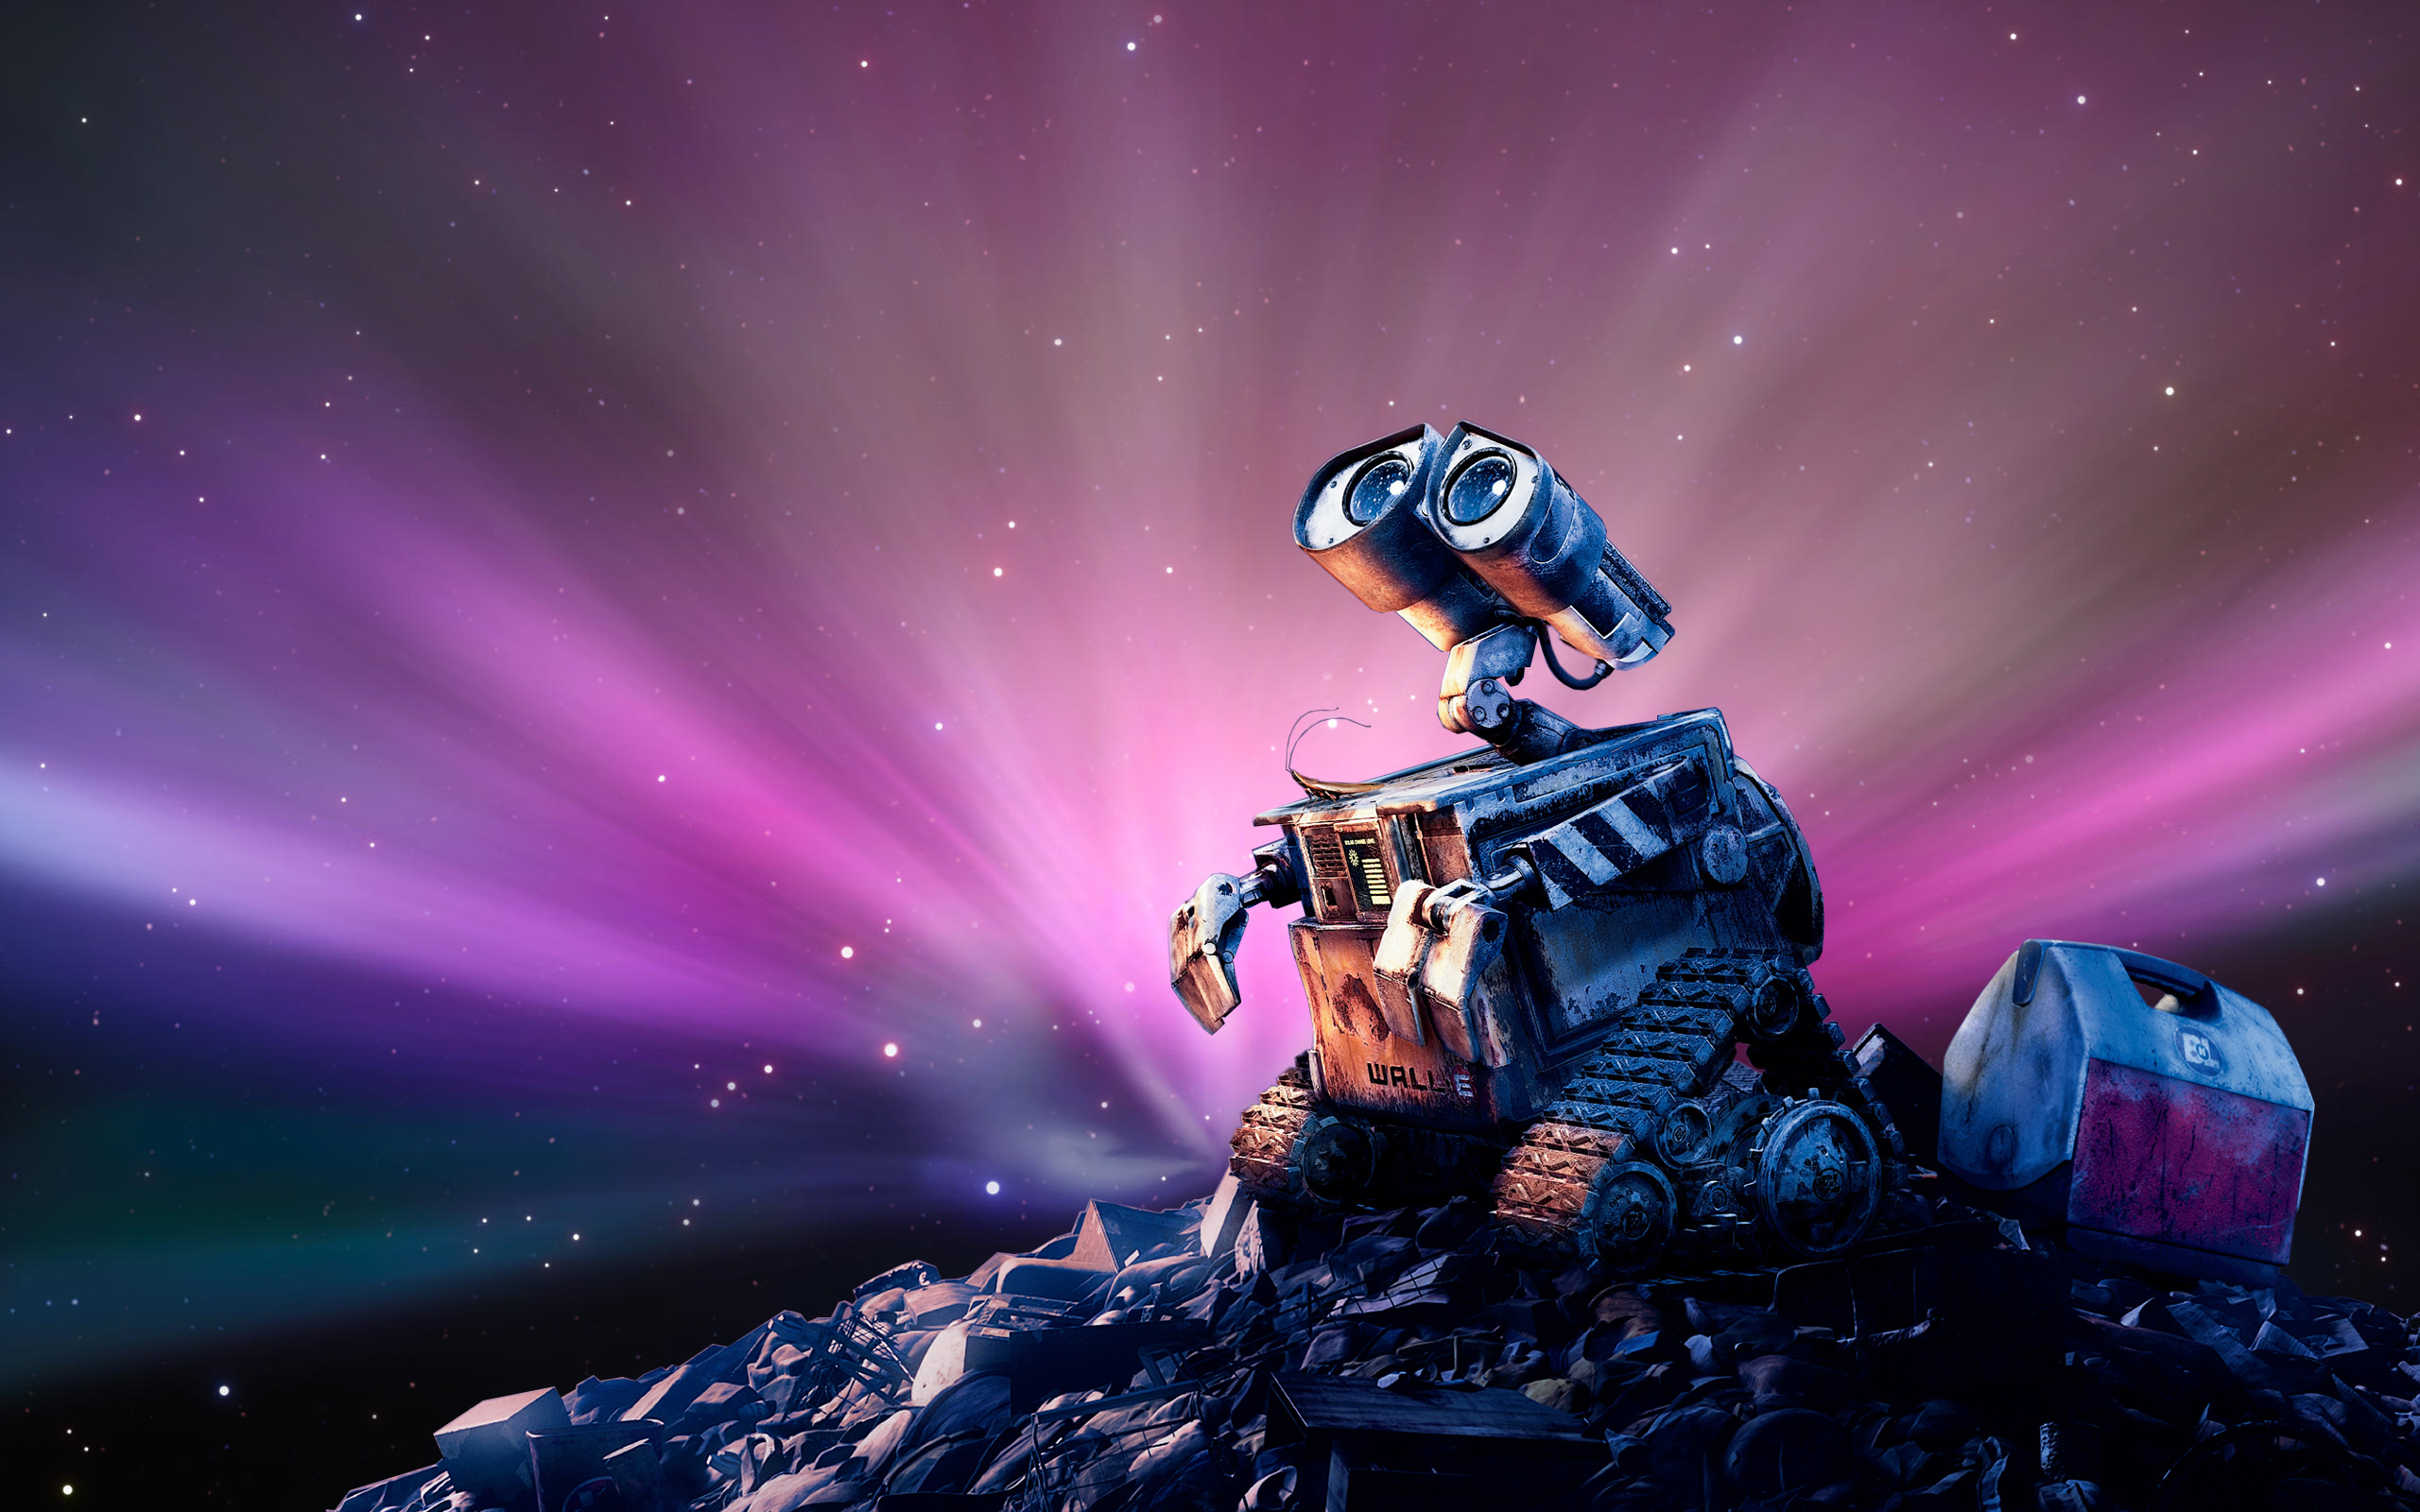 Wall-E HD Wallpapers